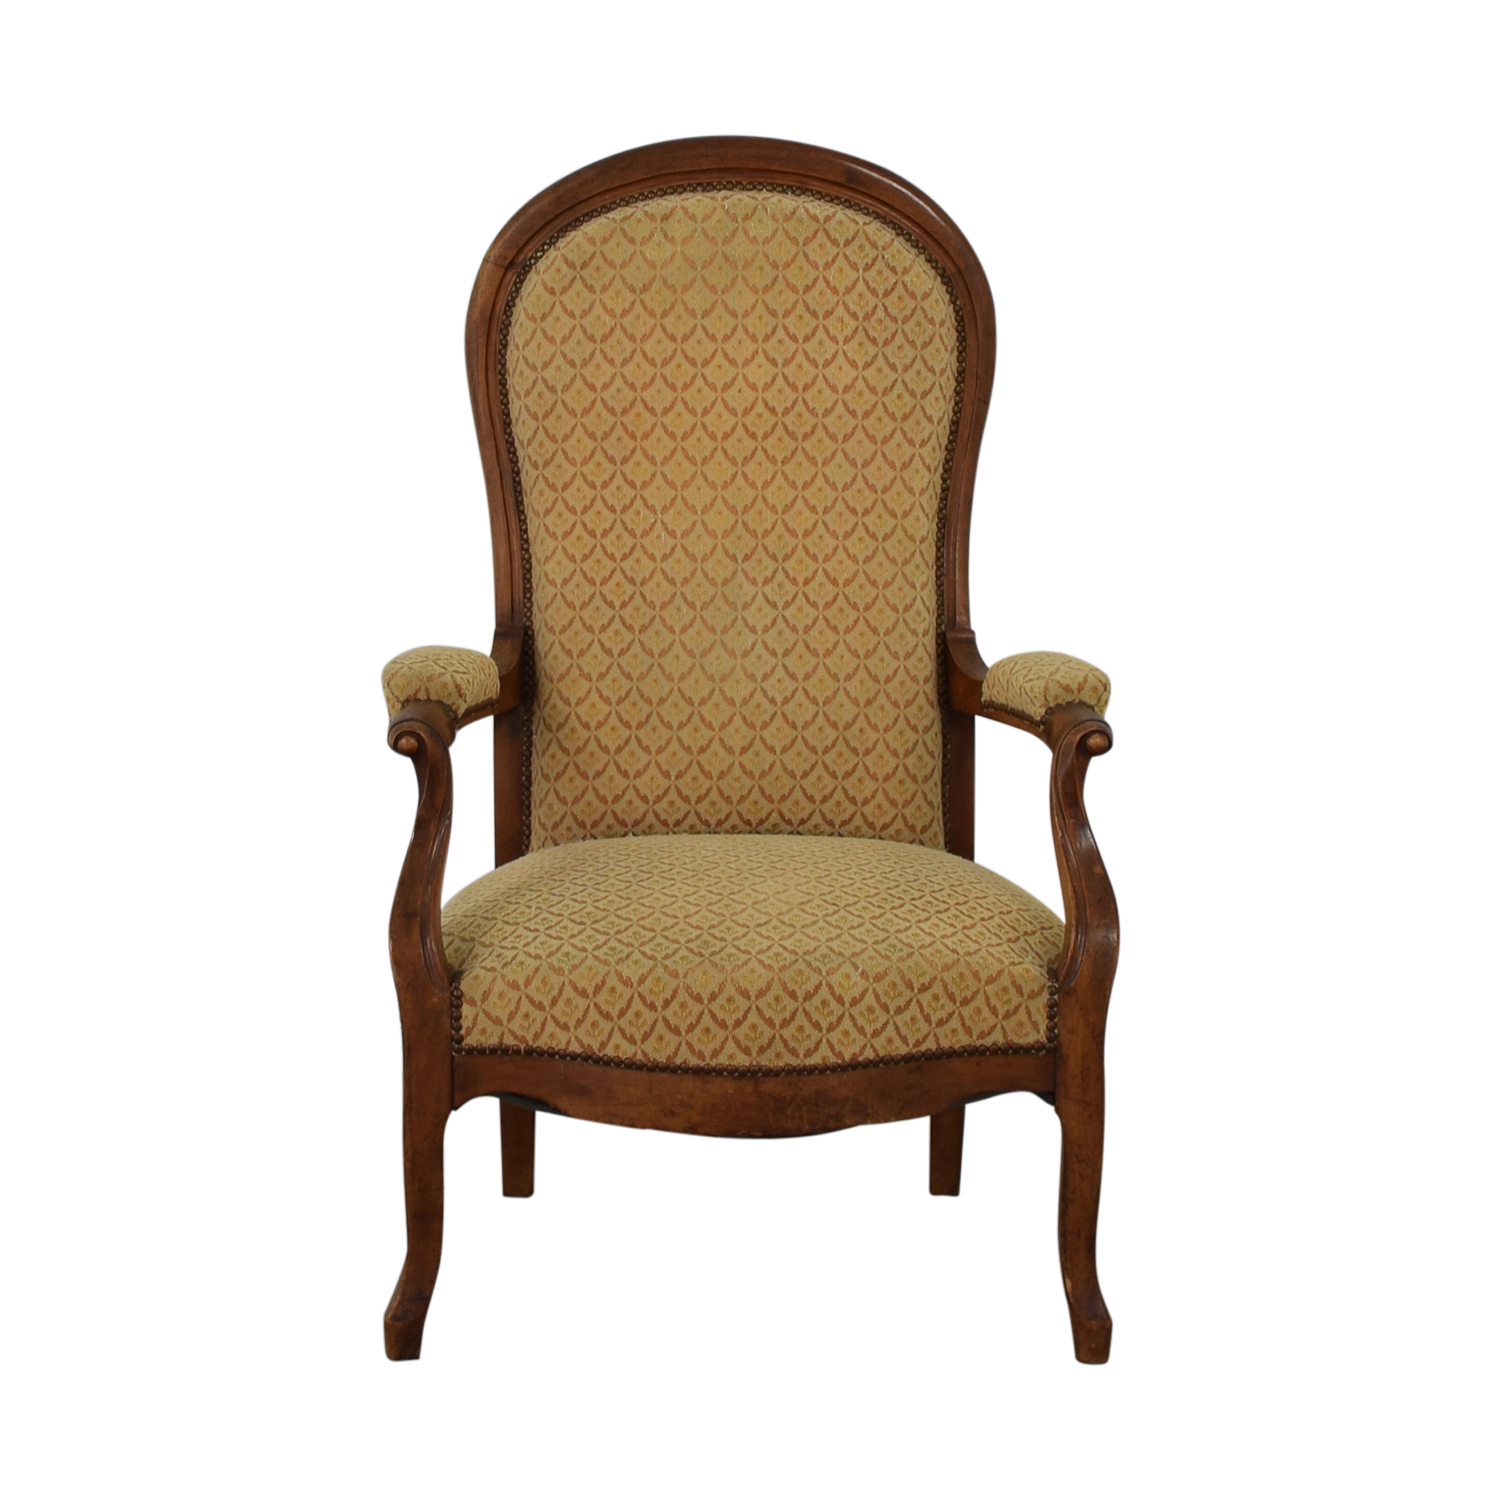 Antique Gold Accent Armchair / Chairs